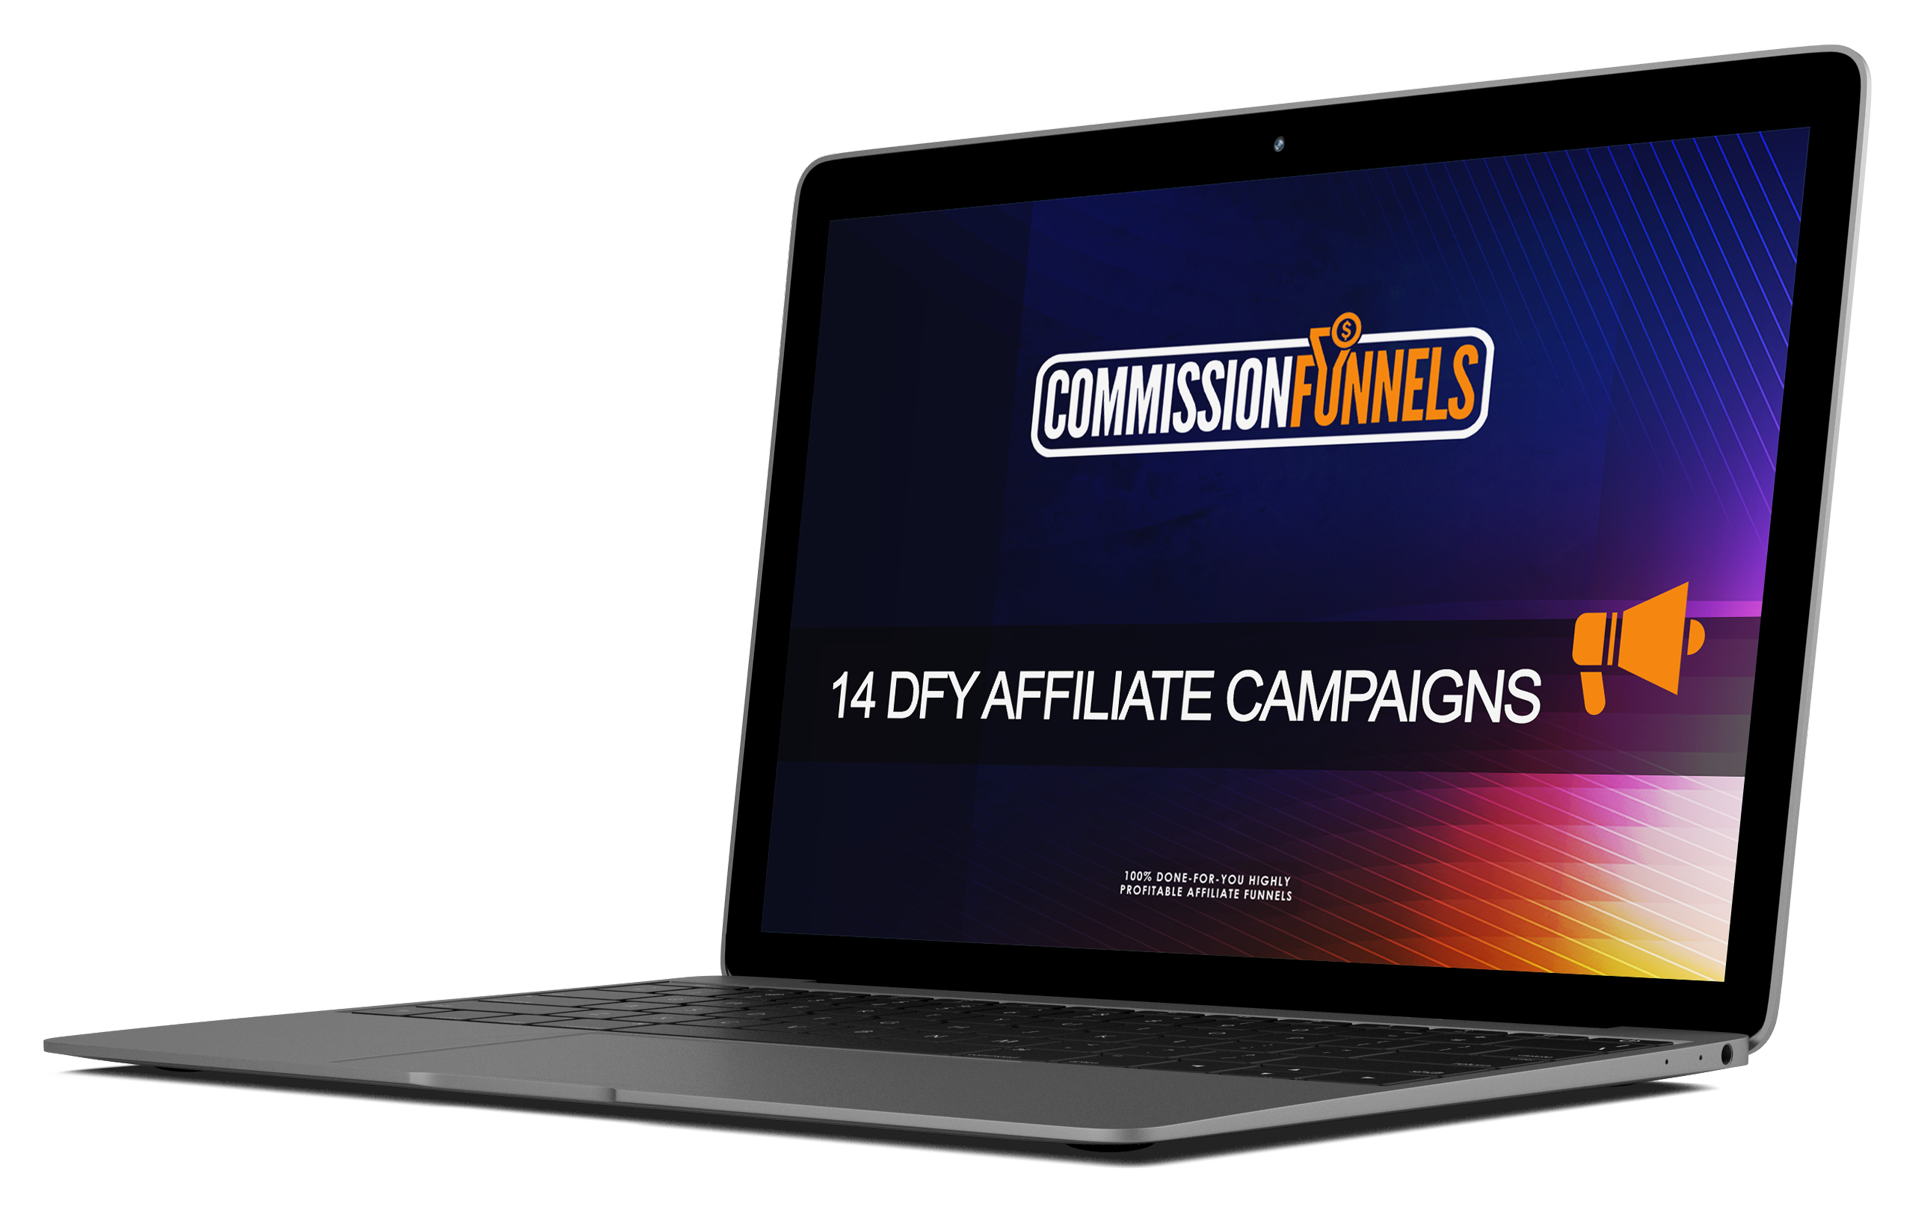 Commission Funnels PRO Review-Commission Funnels PRO Download